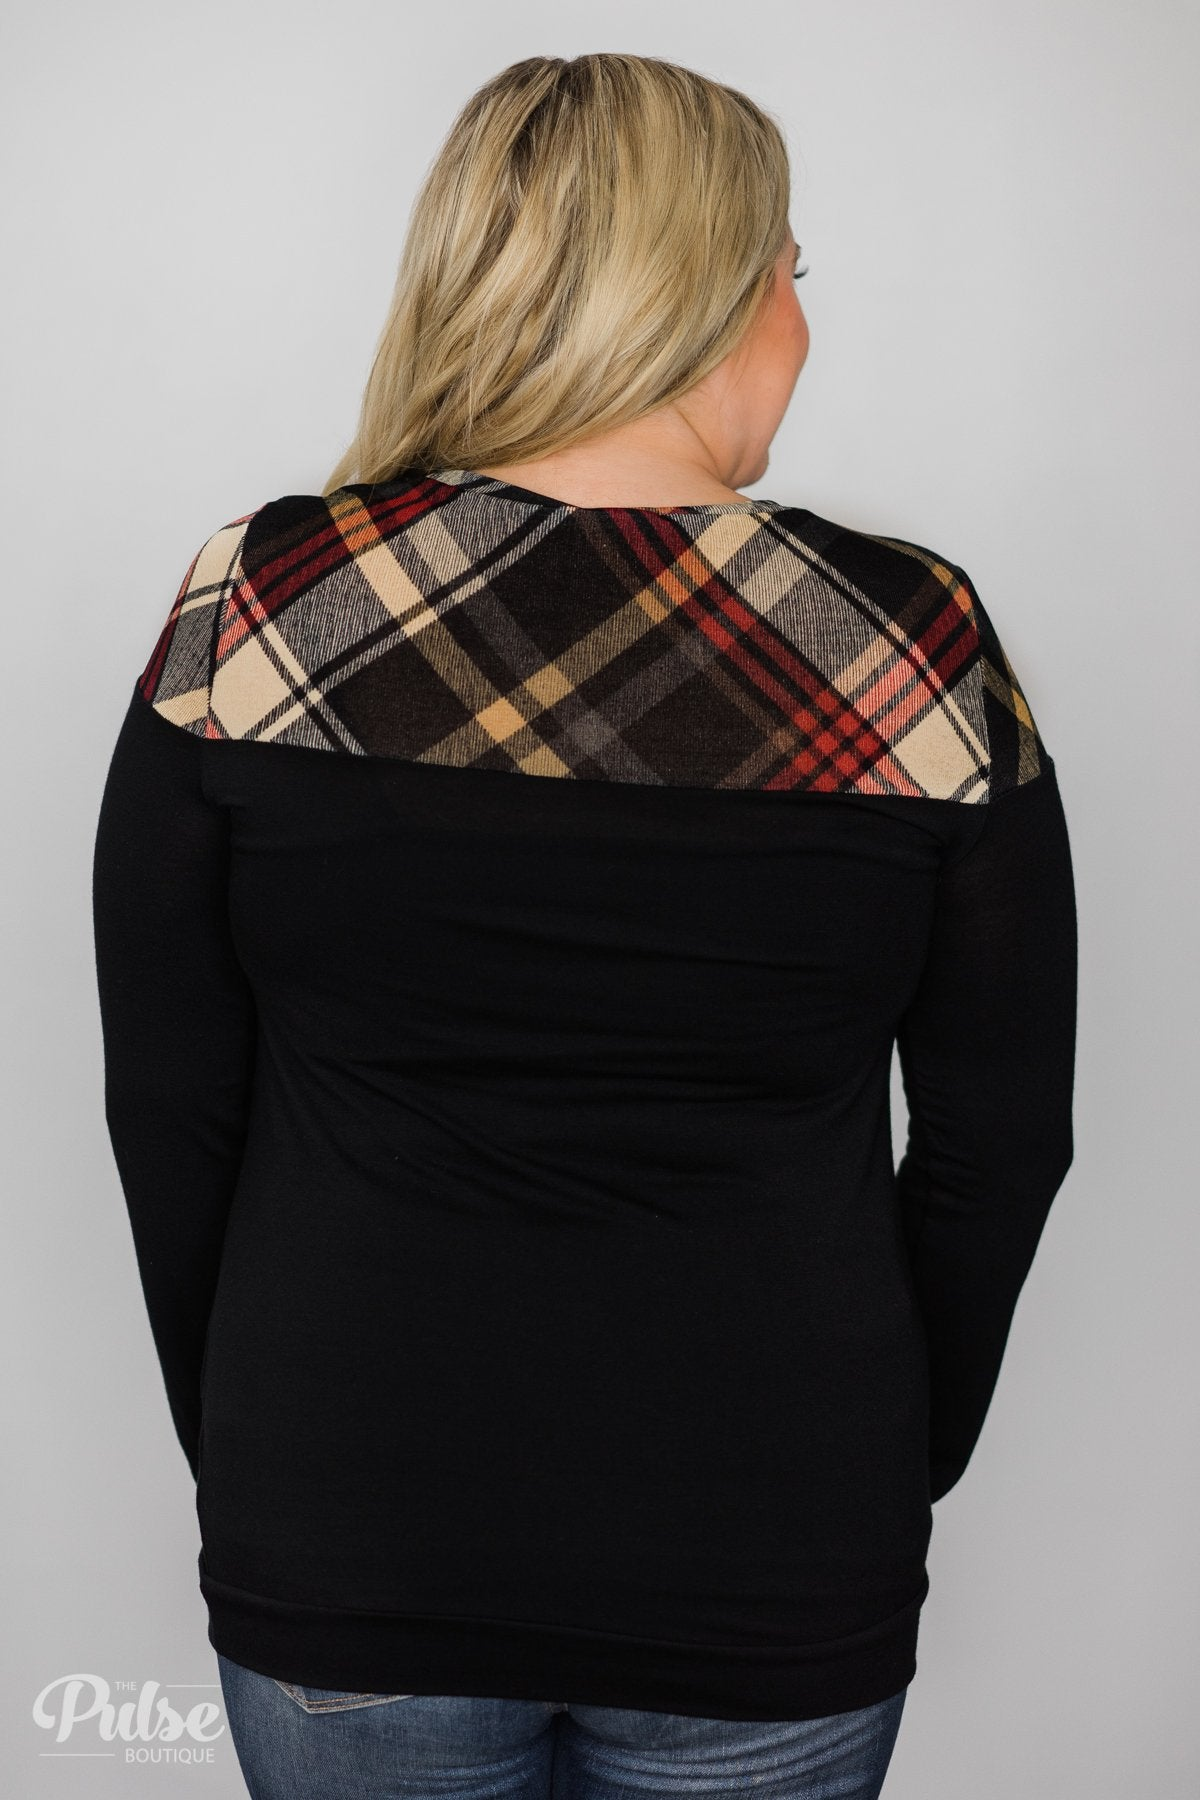 Black & Plaid Long Sleeve Top